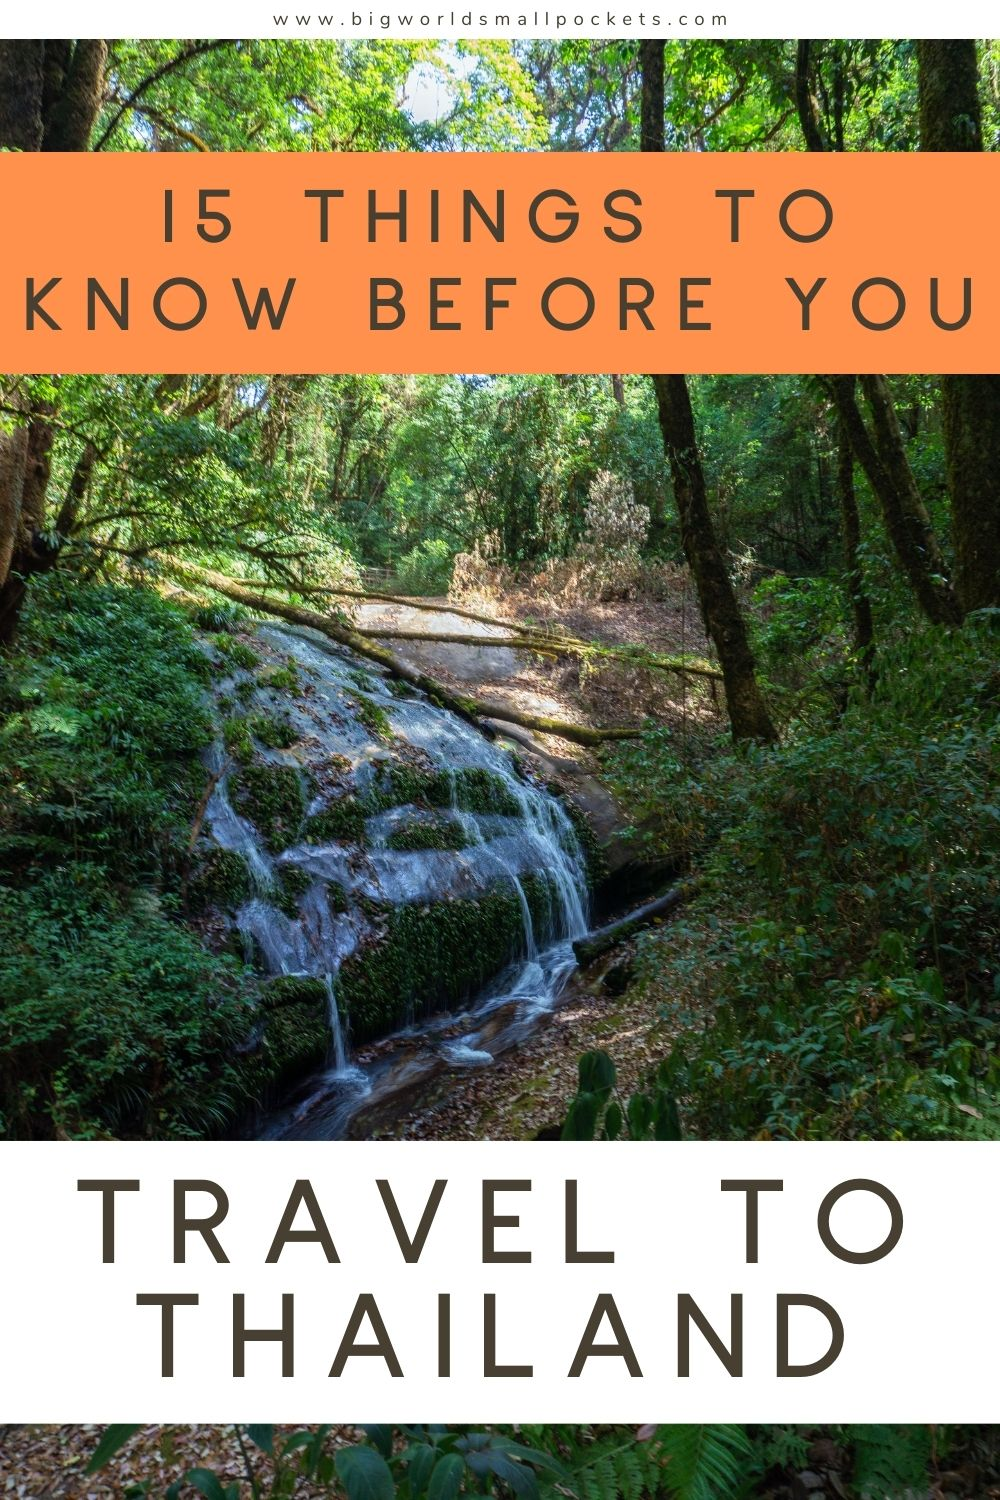 The 15 Things to Know Before you Travel to Thailand